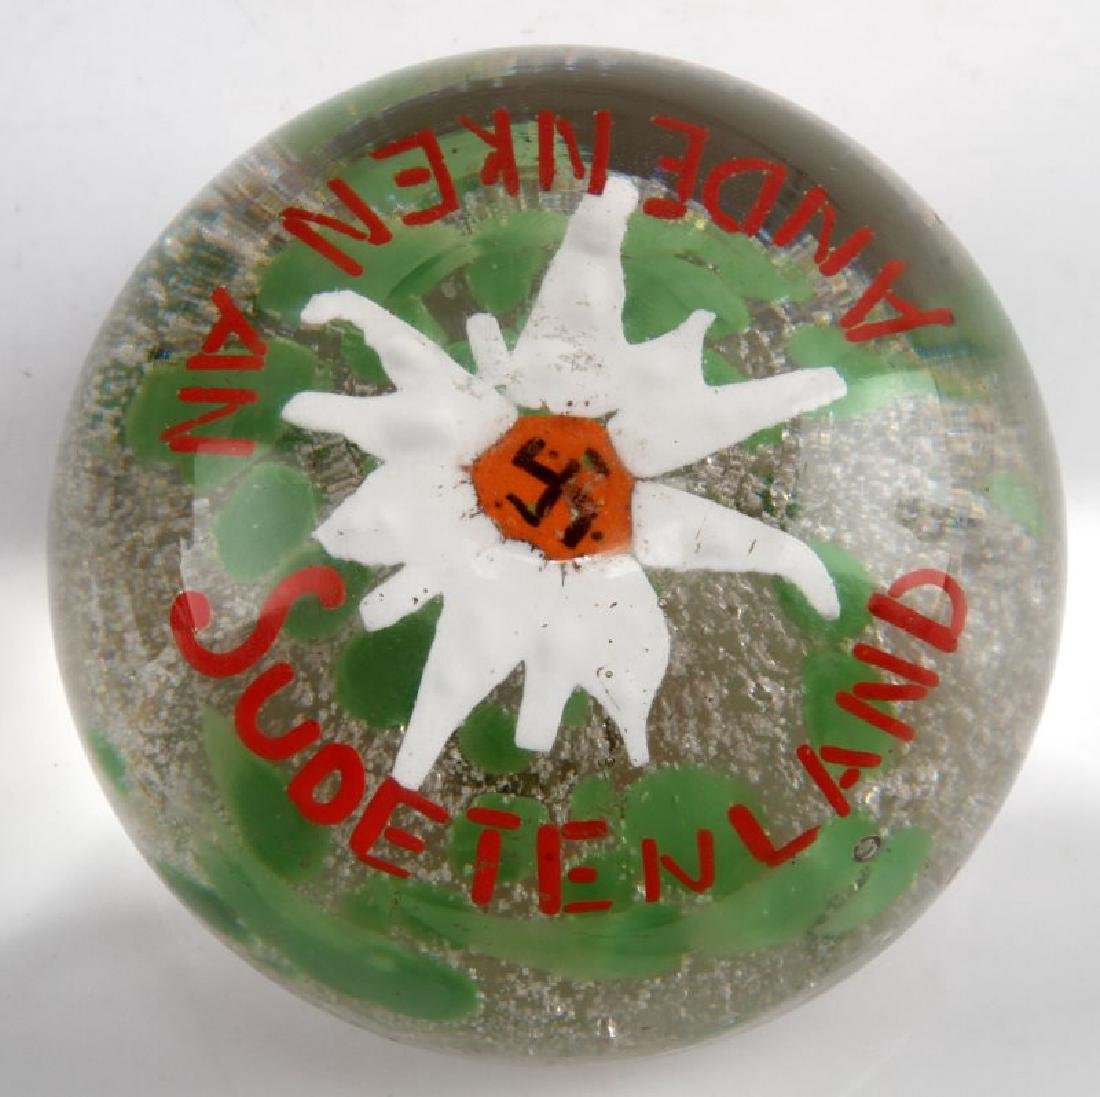 WWII GERMAN 3RD REICH EDELWEISS GLASS PAPERWEIGHT